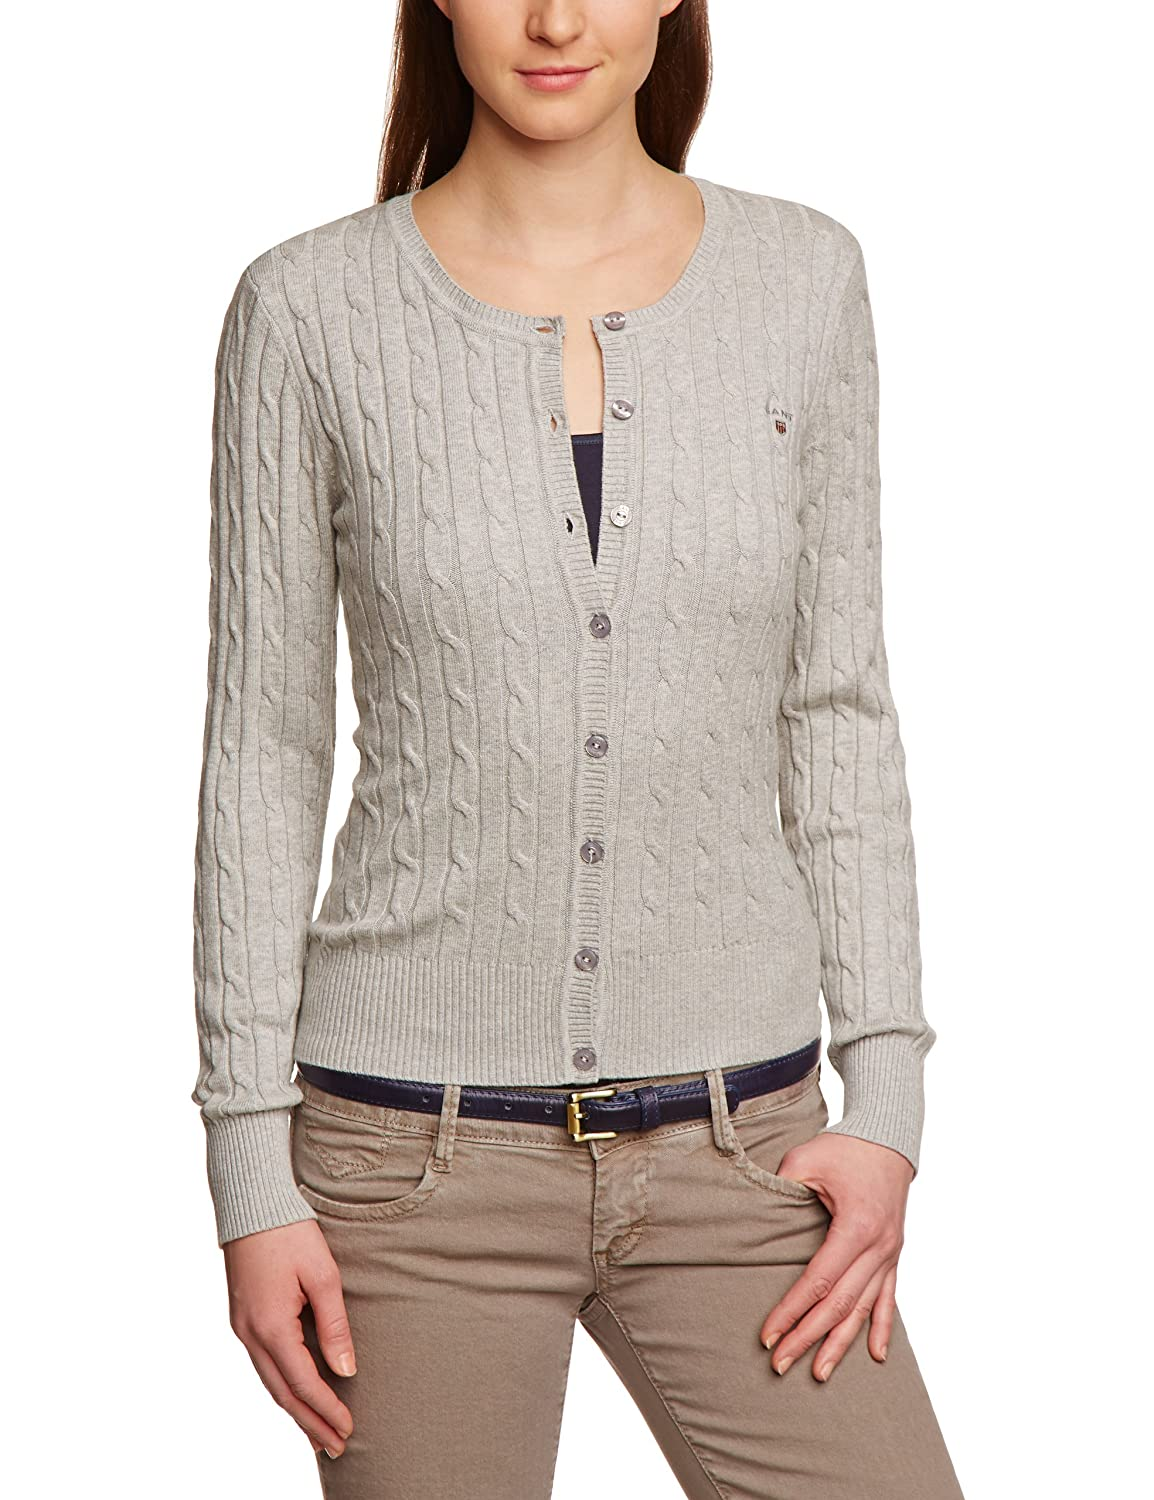 Gant Stretch Cotton Cable Crew Cardigan - Jersey de Punto para Mujer